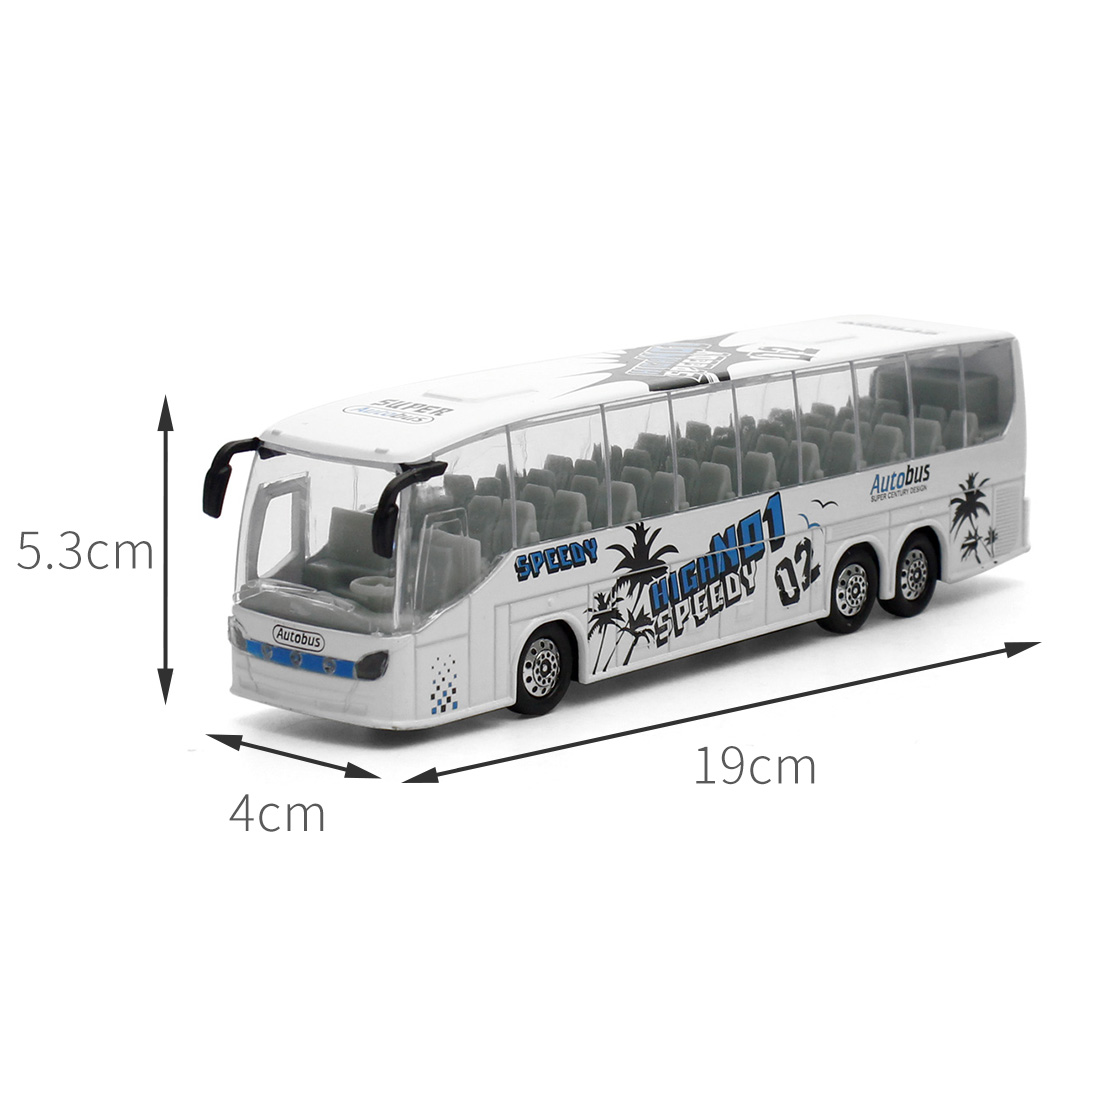 Feichao 1:50 Diecast Cars Metal Model Car Toys Alloy Bus Toy with Openable Doors/Music/Light Function for Children Boys